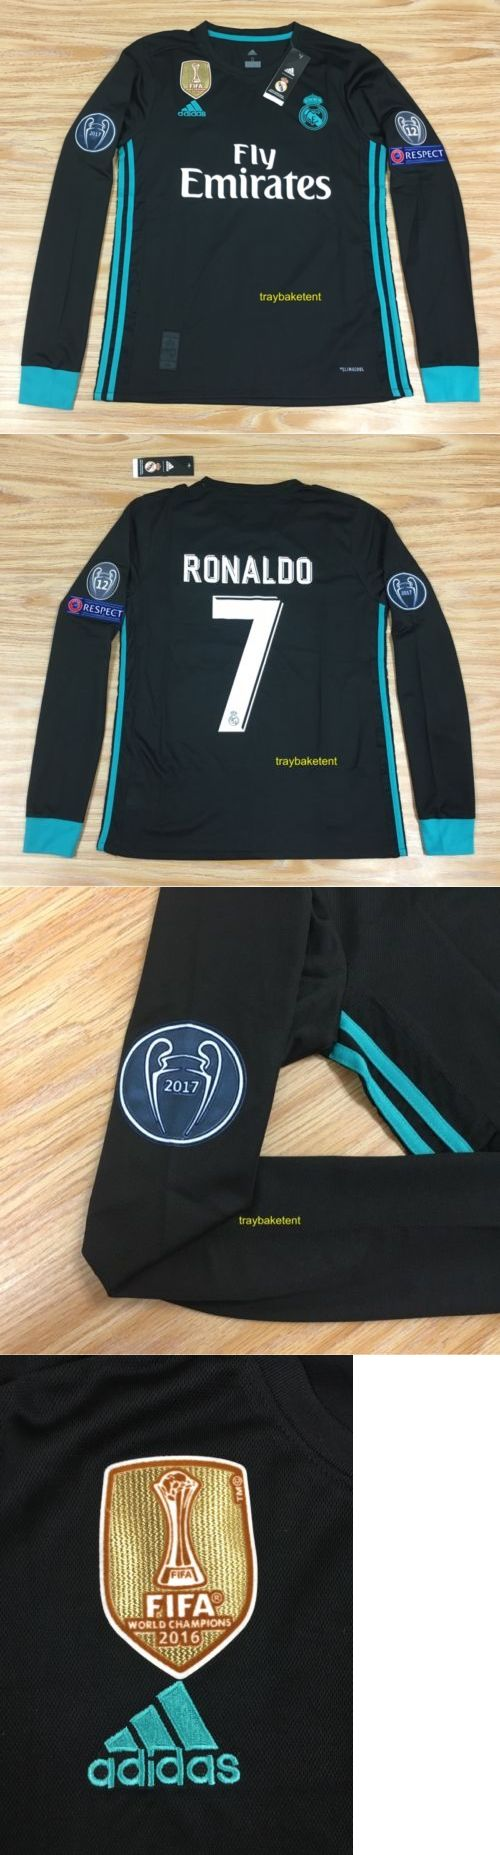 Men 123490: Real Madrid Cristiano Ronaldo Black Long Sleeve Jersey 2017-2018 Size Xl -> BUY IT NOW ONLY: $64.99 on eBay!